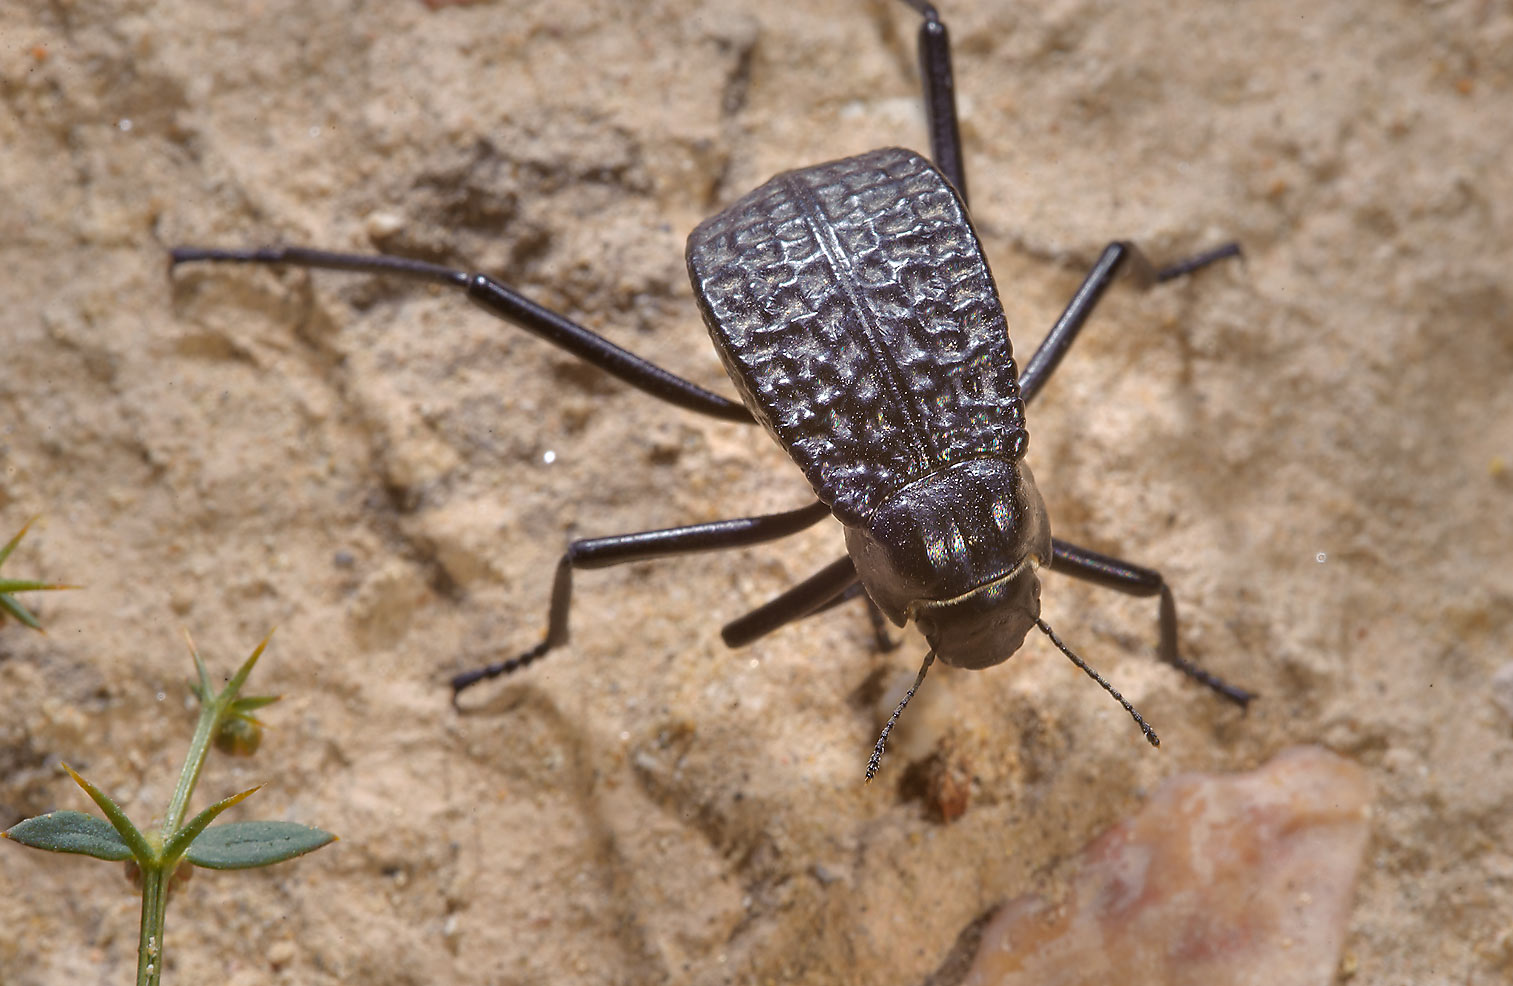 Pitted darkling beetle (Adesmia cancellata) in Trainah in southern Qatar